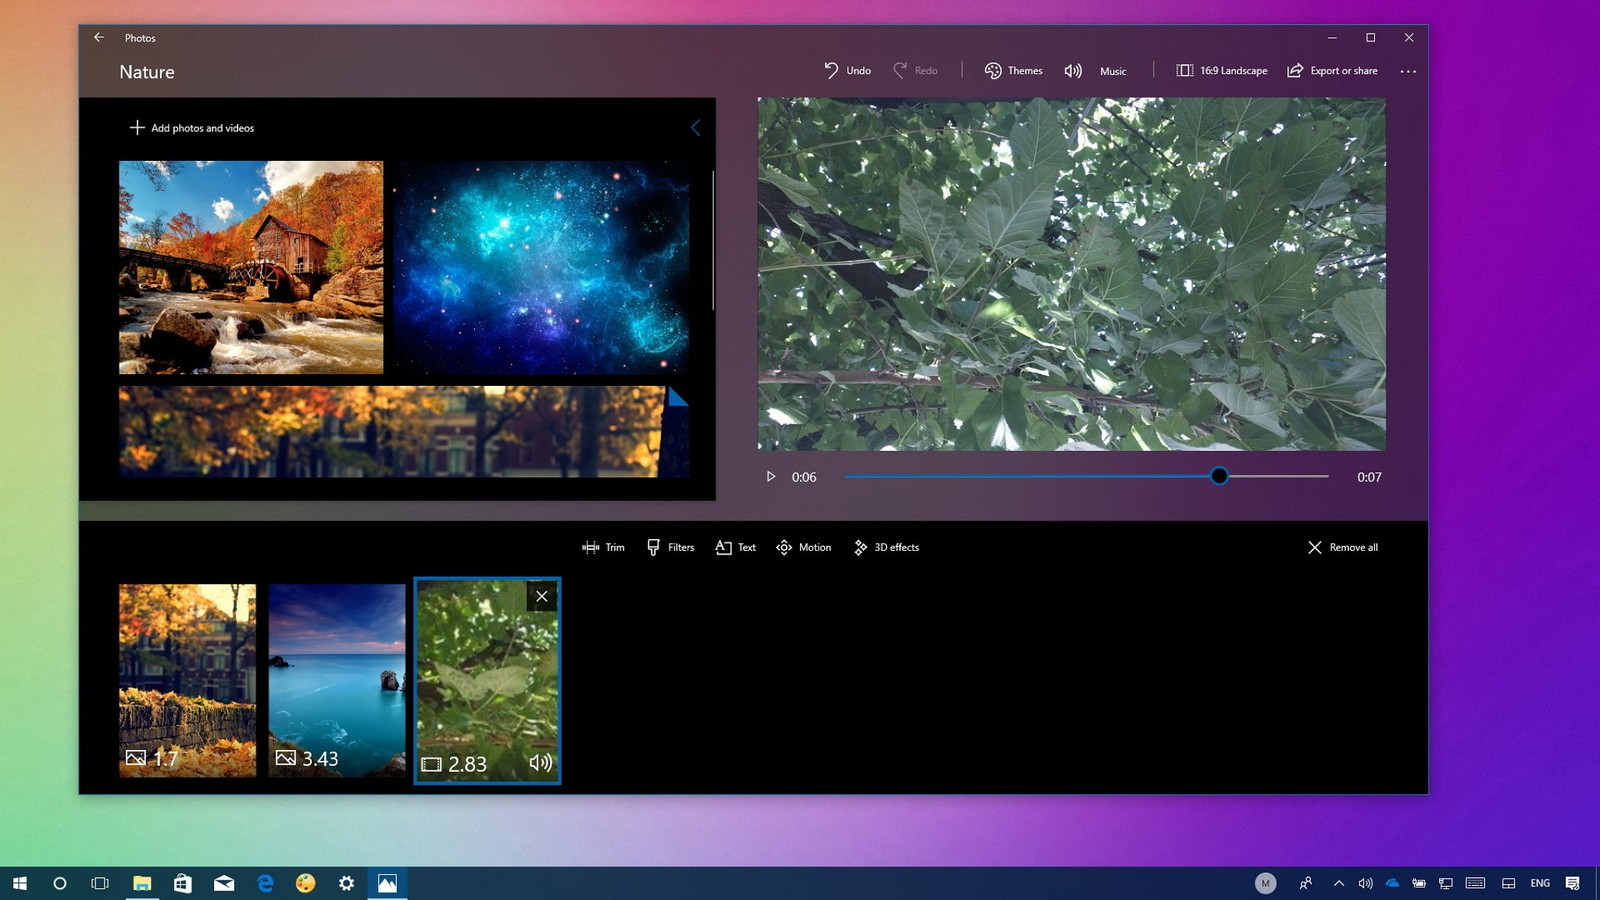 Top 7 Best Video Editing Software for Windows [2018]